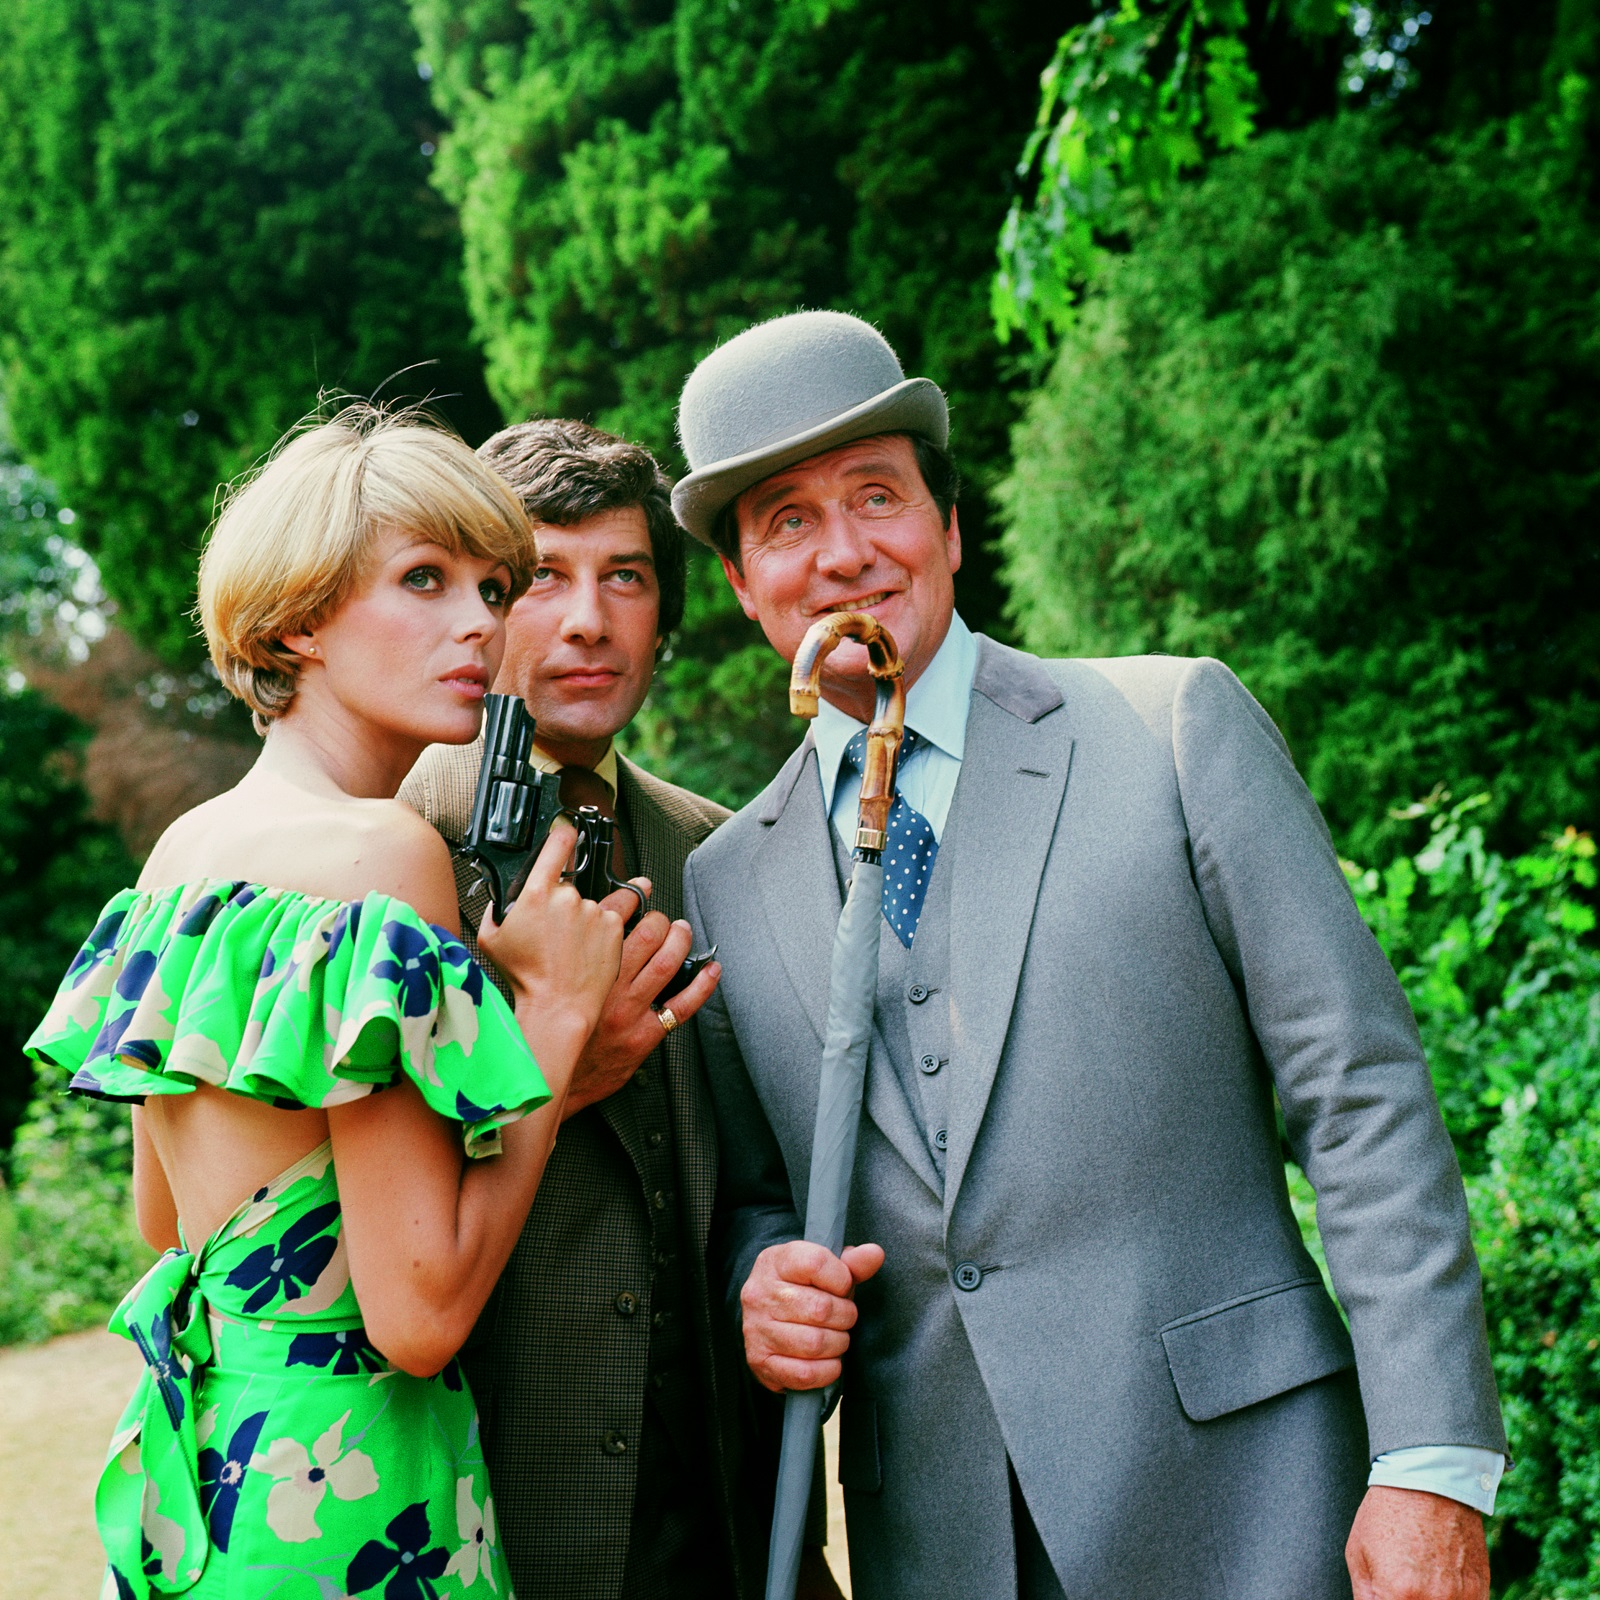 Patrick Macnee, Joanna Lumley and Gareth Hunt